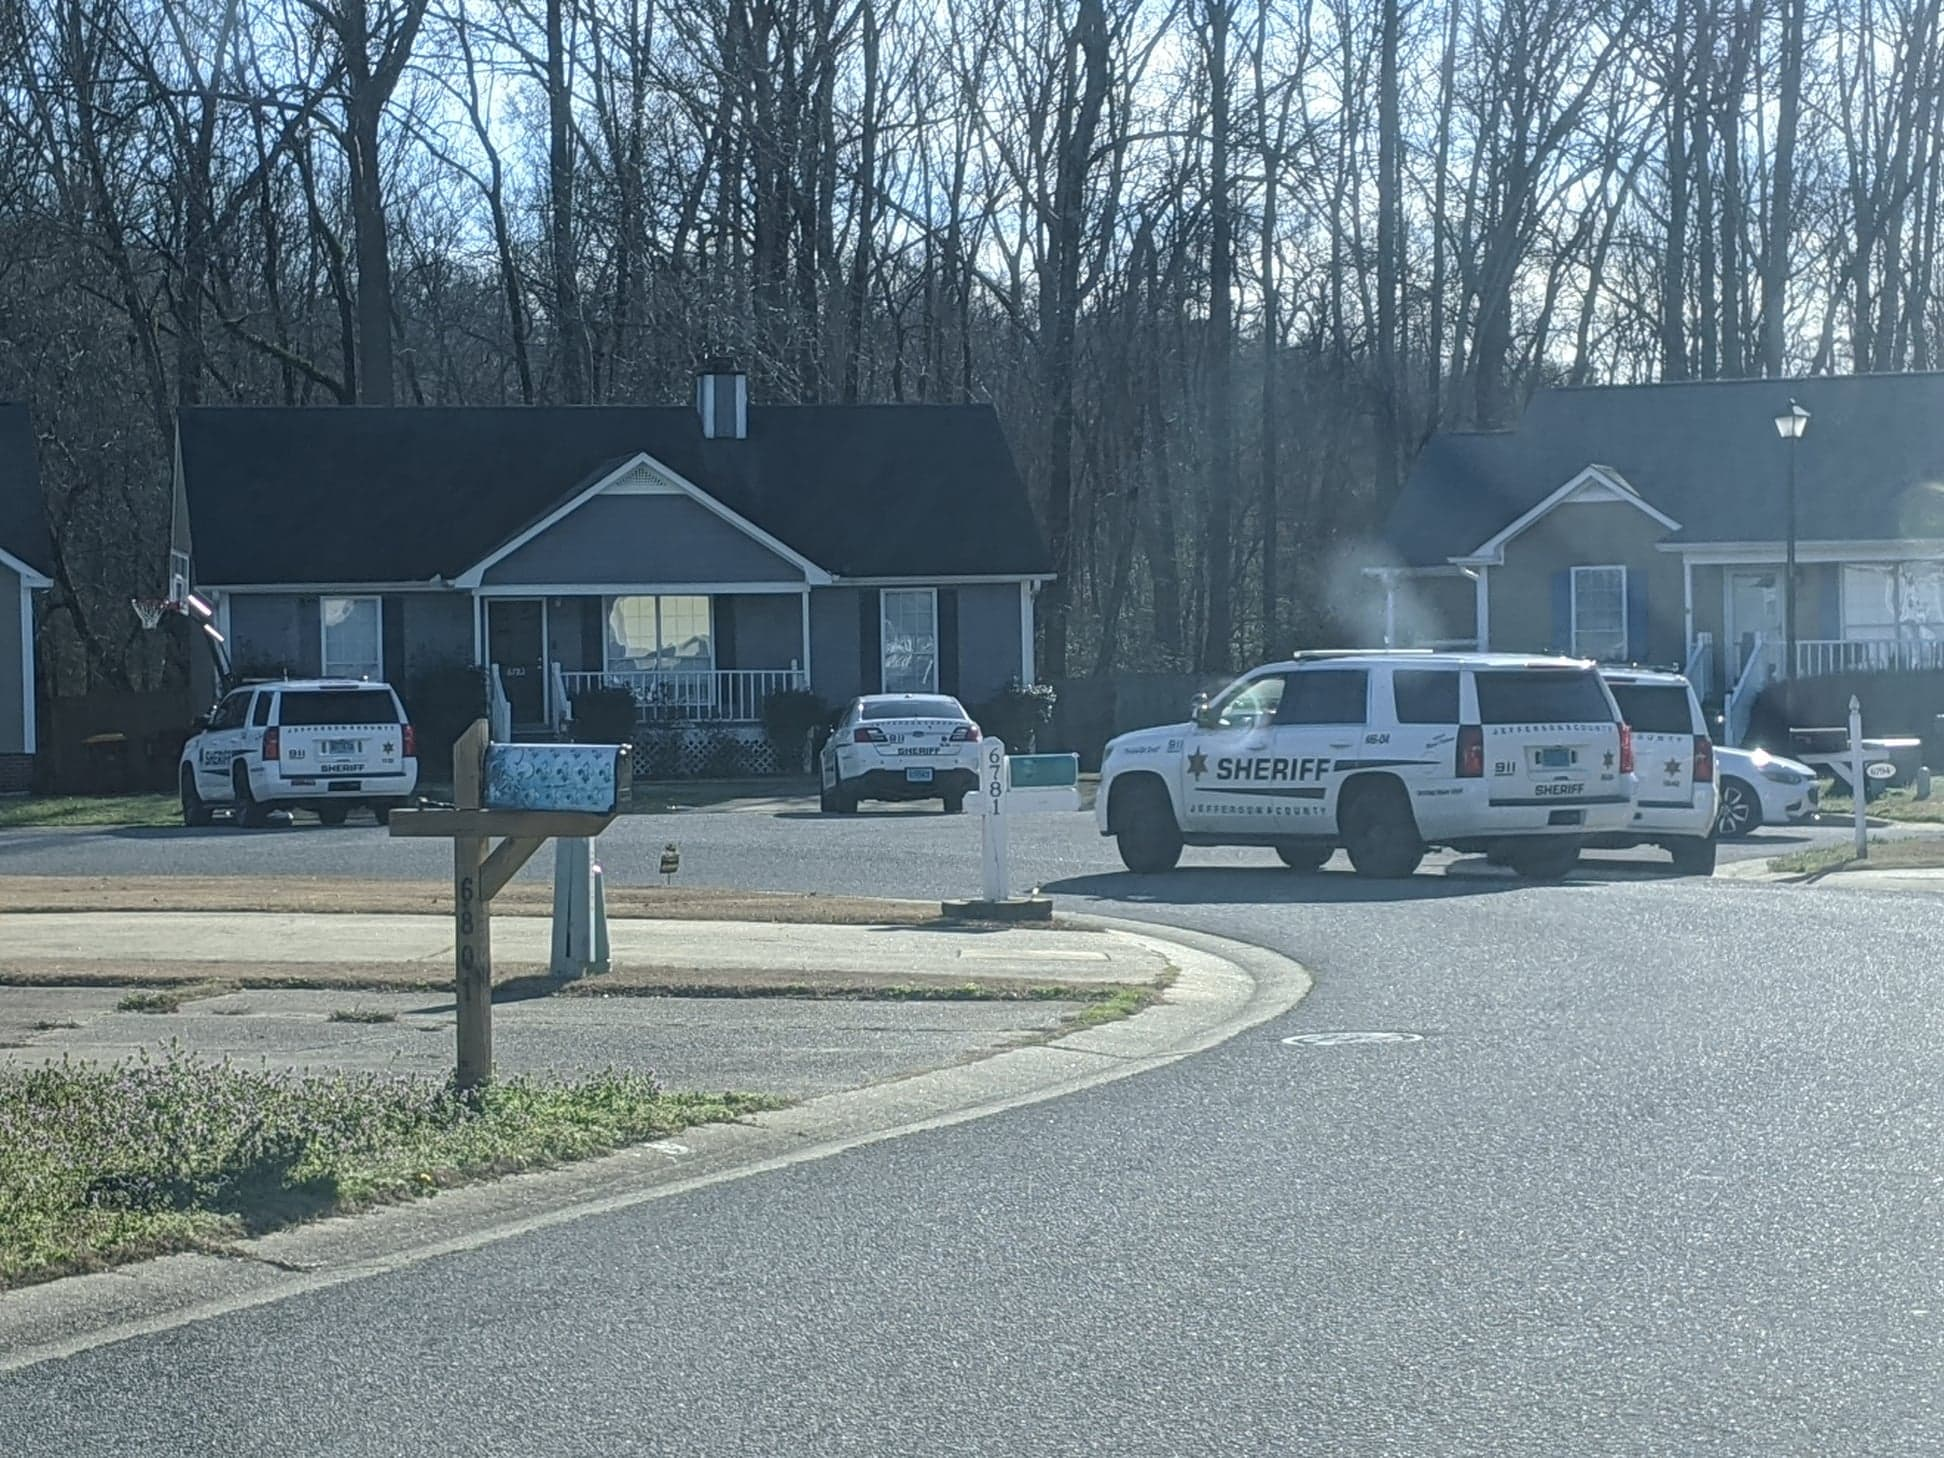 Deputies searched for suspect in woods near Pinson Valley High School and Rudd Middle School